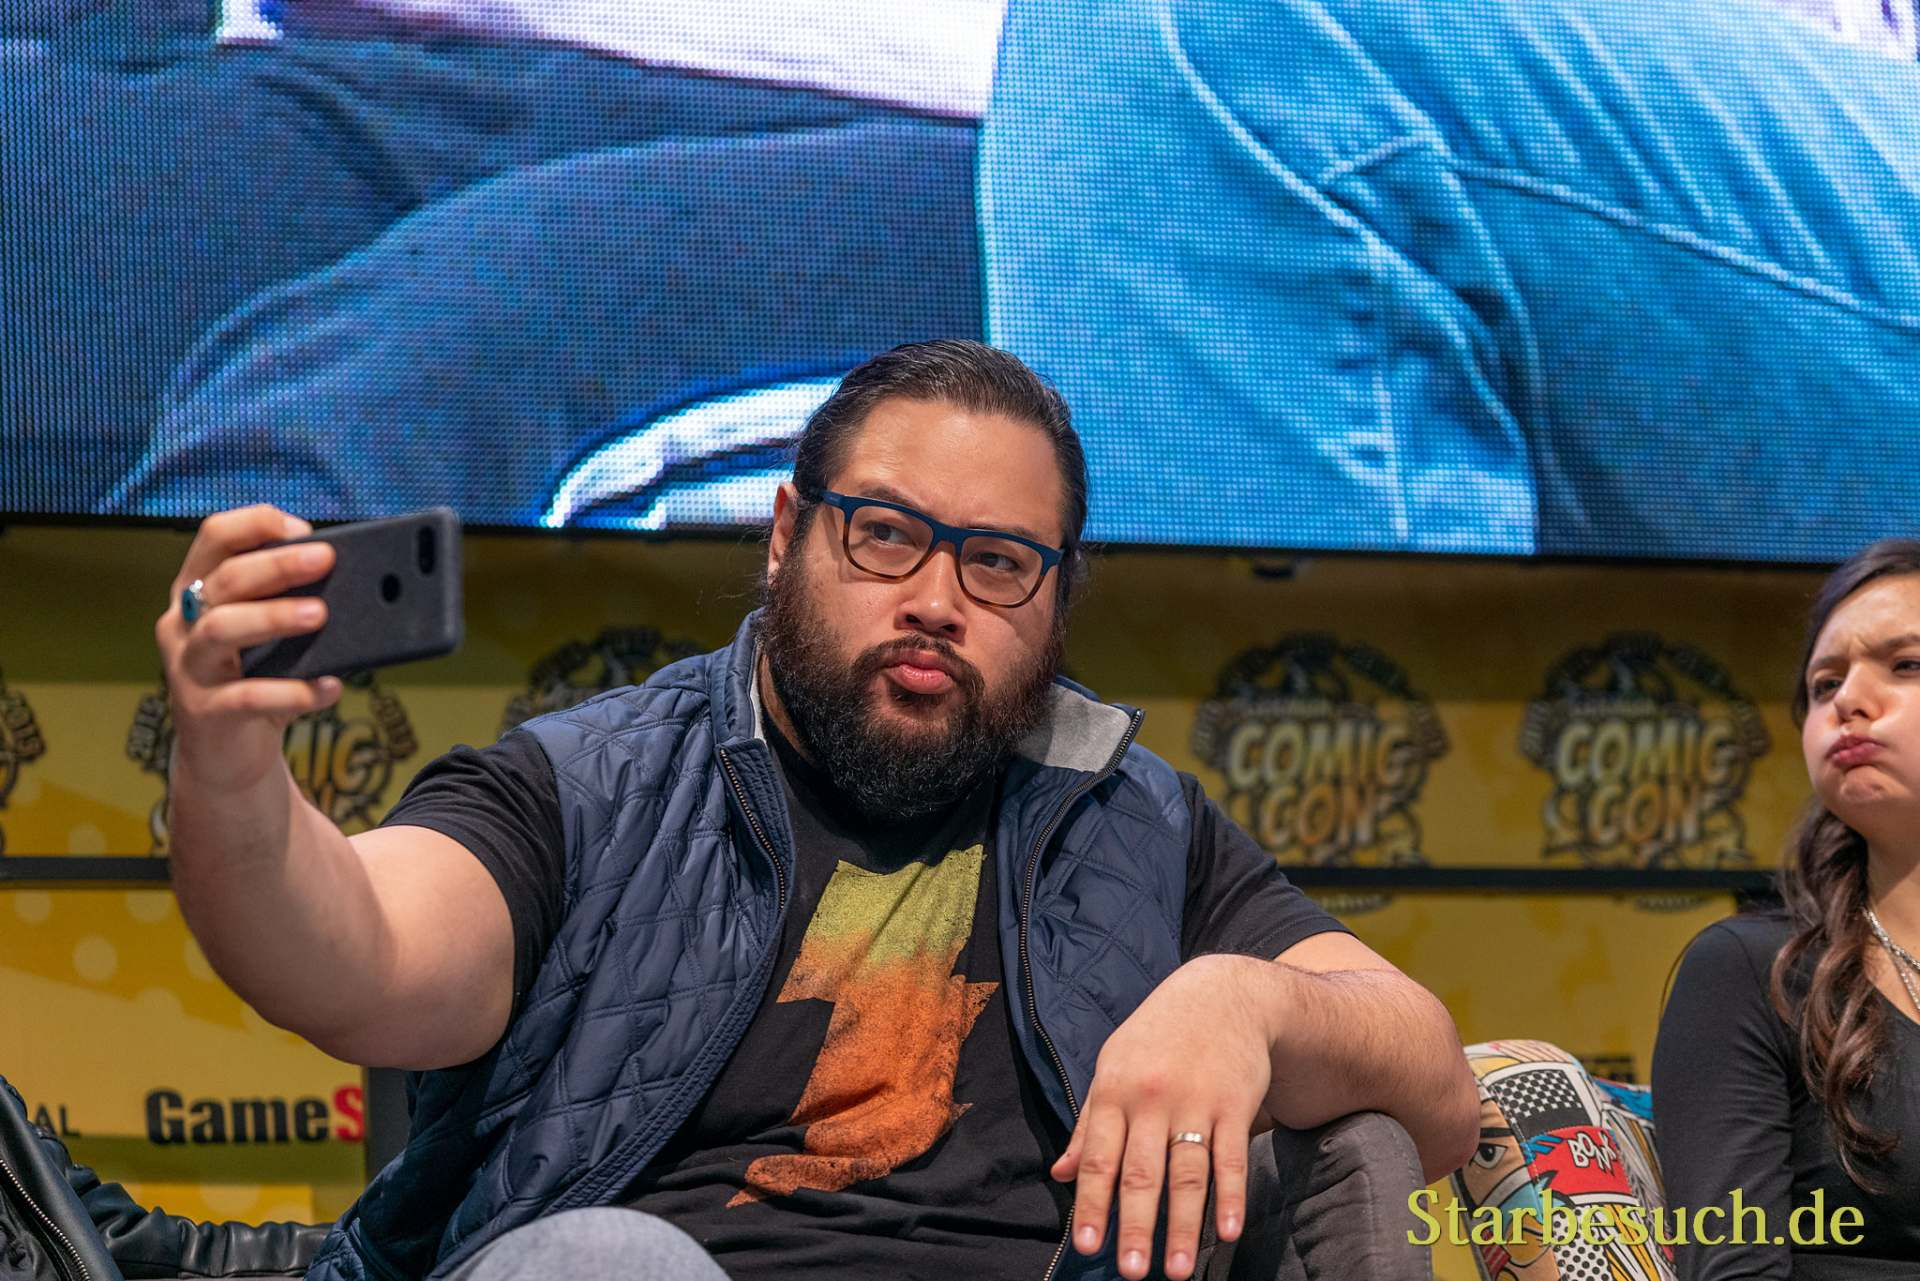 DORTMUND, GERMANY - December 8th 2019: Cooper Andrews at German Comic Con Dortmund